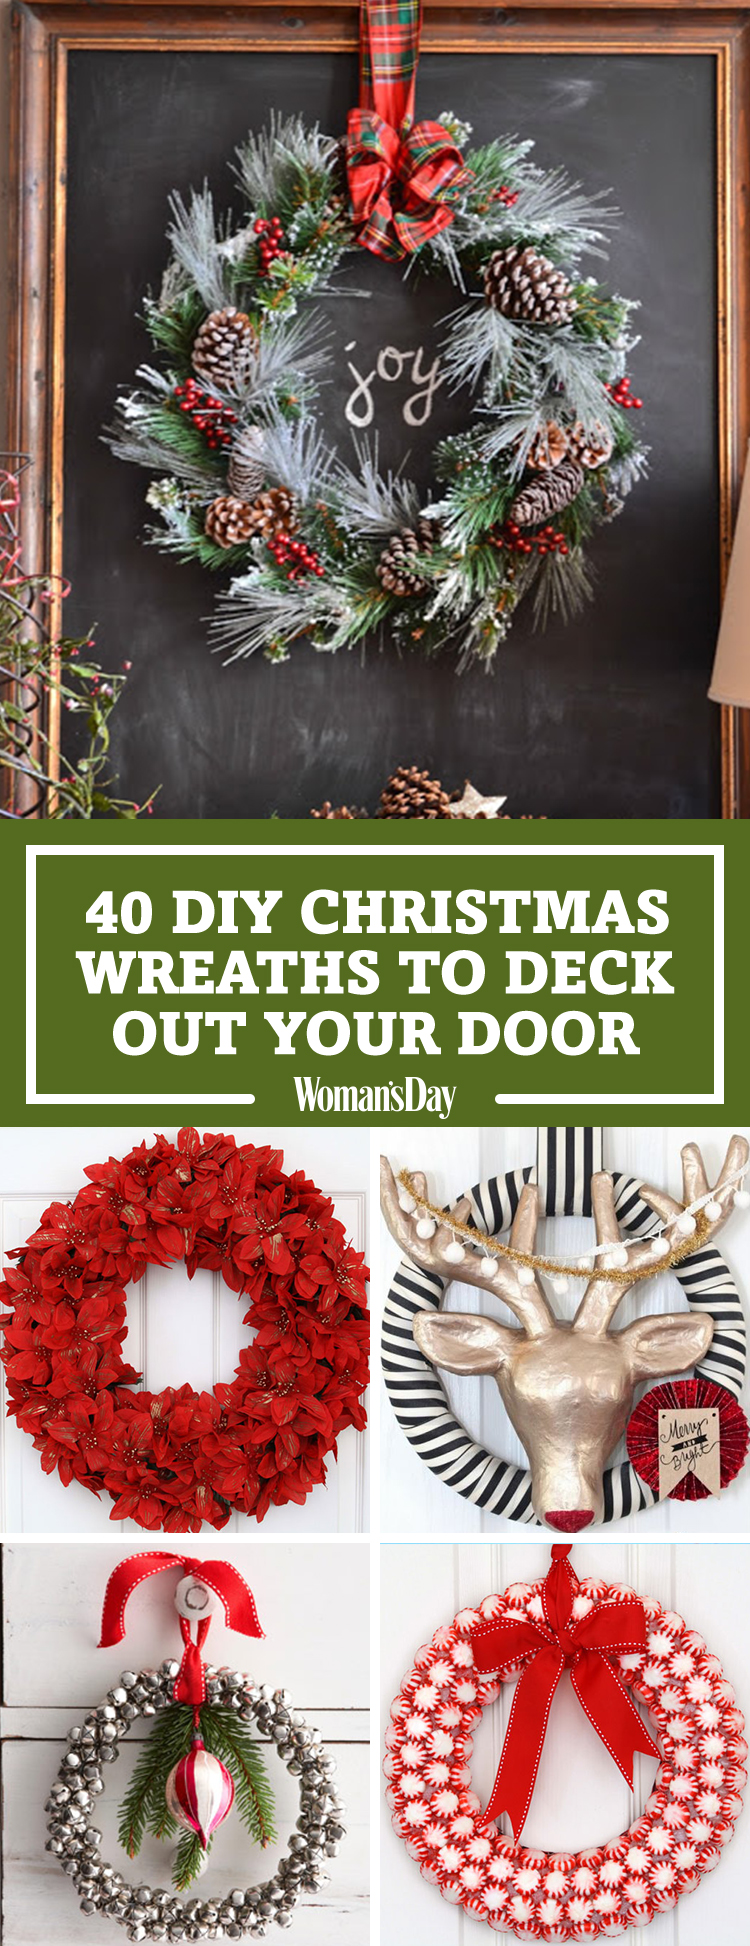 40+ DIY Christmas Wreath Ideas - How To Make a Homemade ...